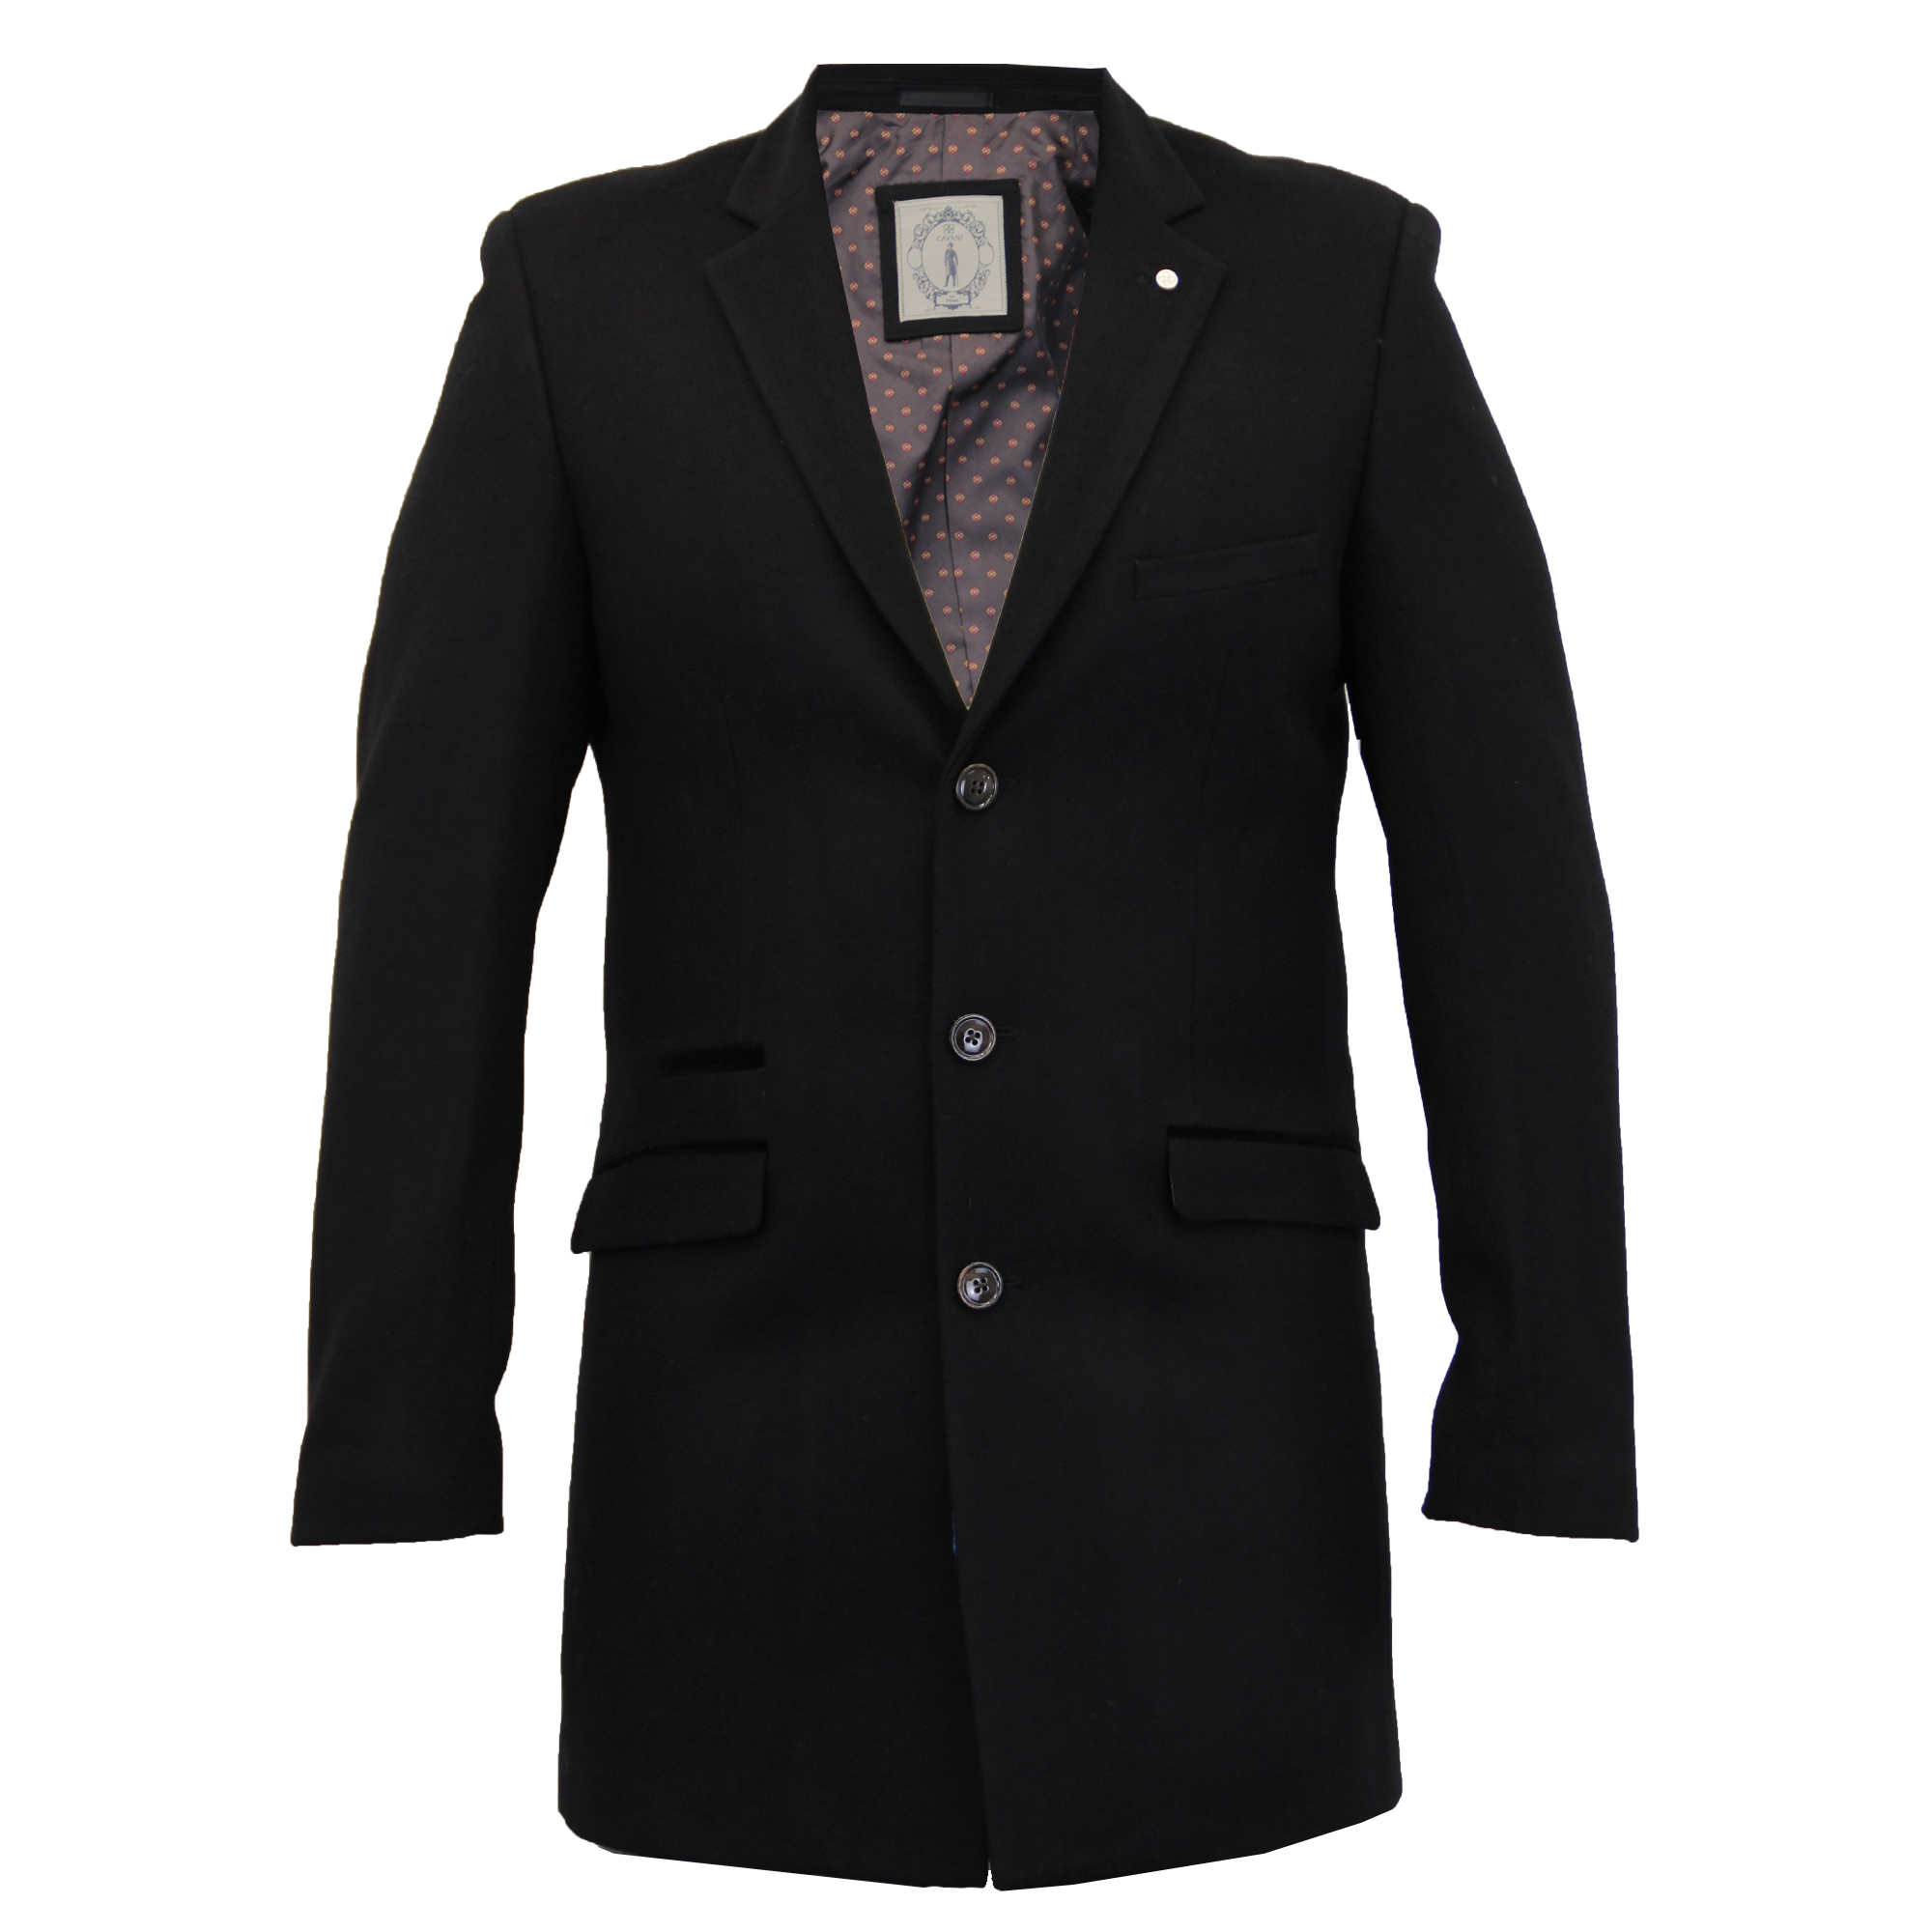 Shop the Latest Collection of Slim Fit Blazers & Sports Coats for Men Online at private-dev.tk FREE SHIPPING AVAILABLE!